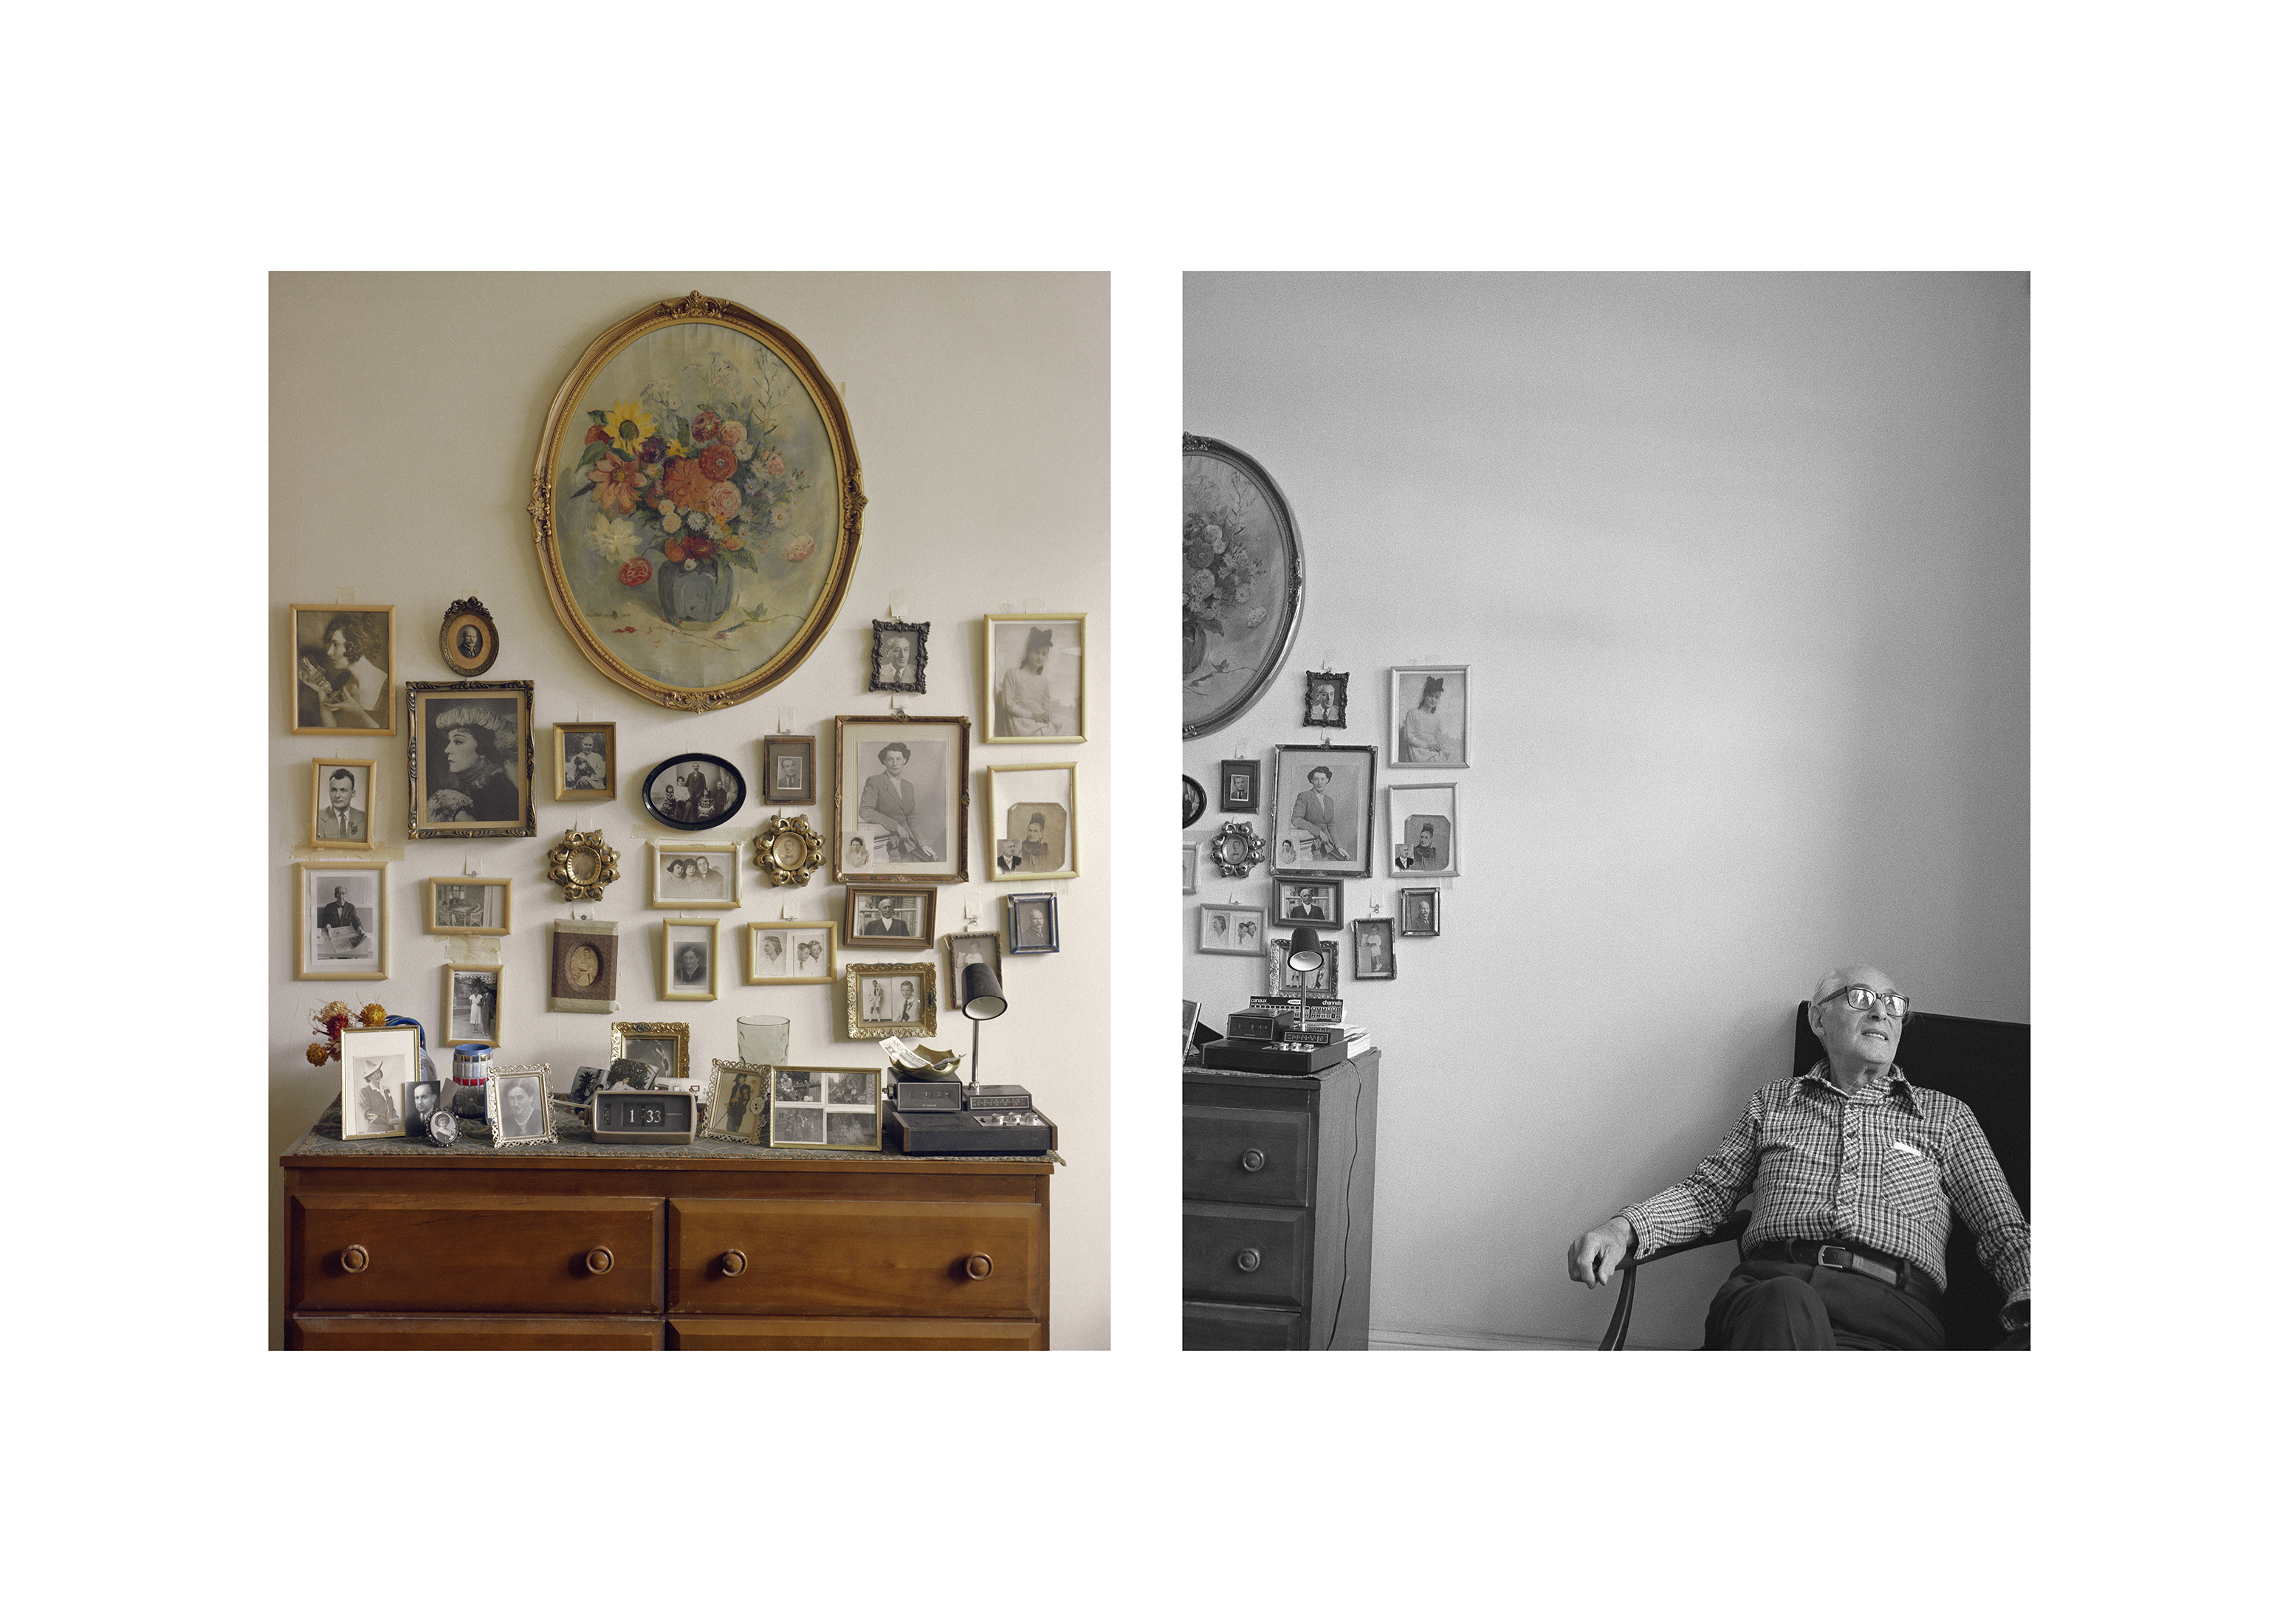 This work is composed of two photographs side by side. The colour picture on the left shows framed photos on a wall above a dresser. The black-and-white picture on the right shows a pensive man in an armchair, to the right of the dresser.